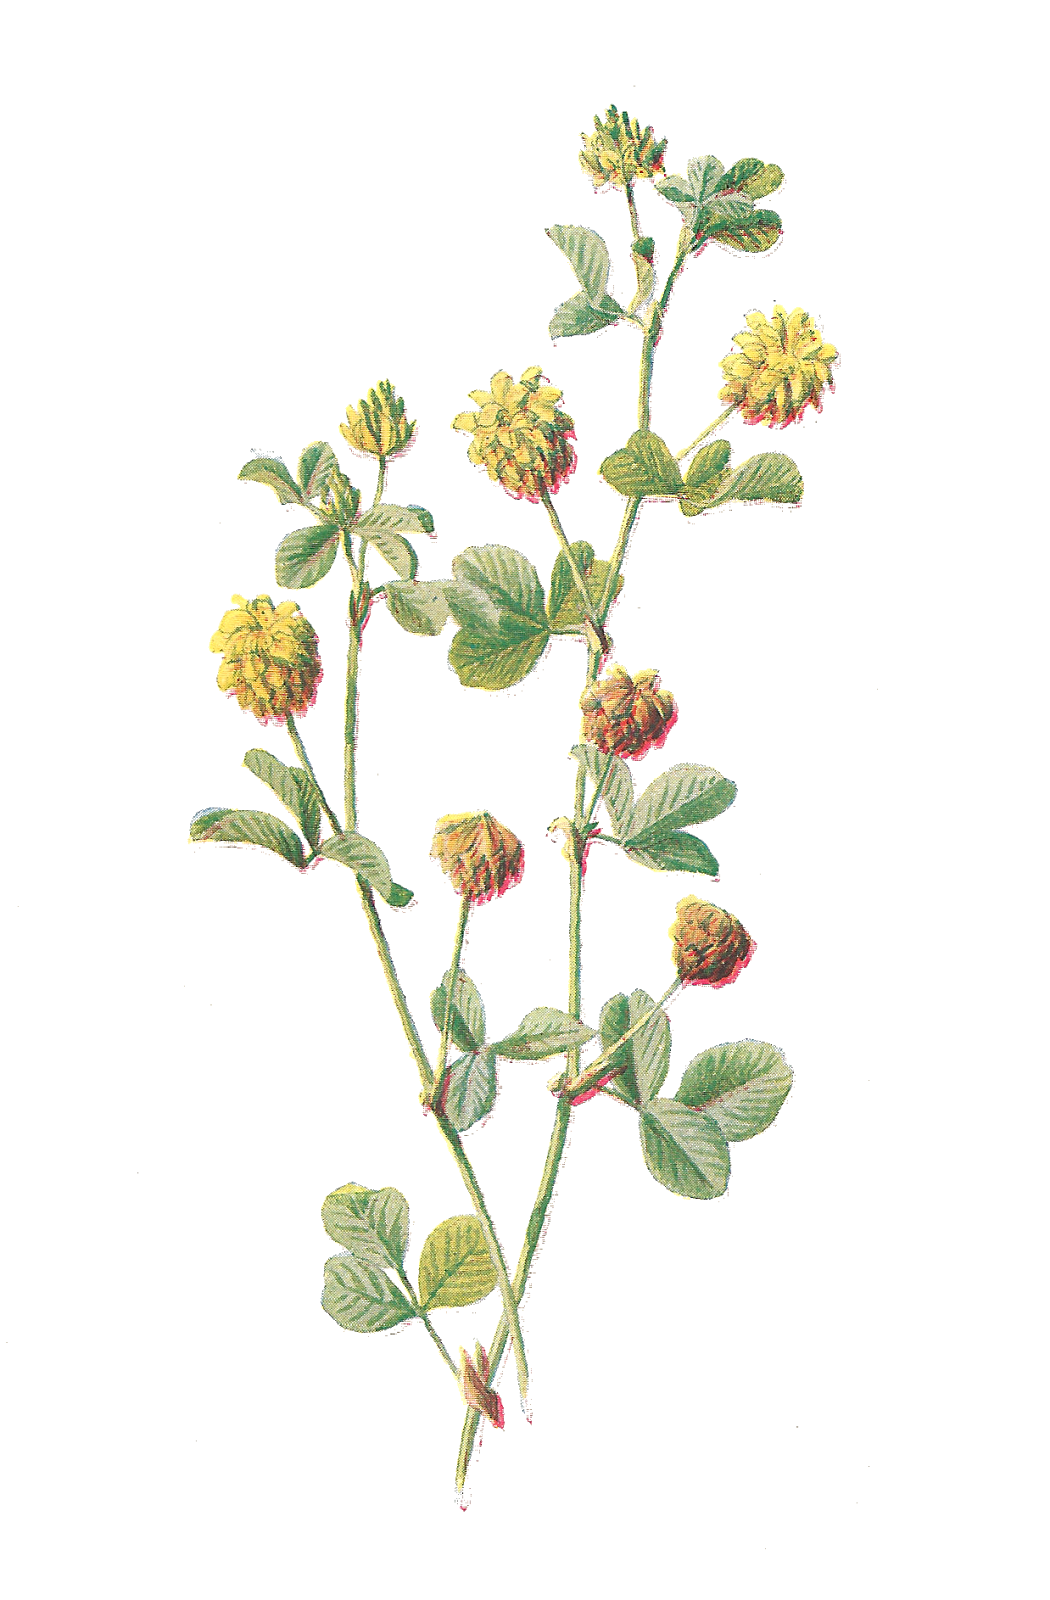 Free pictures flowers banner freeuse Antique Images: Free Flower Graphic: Wildflower Clip Art Hop Trefoil ... banner freeuse